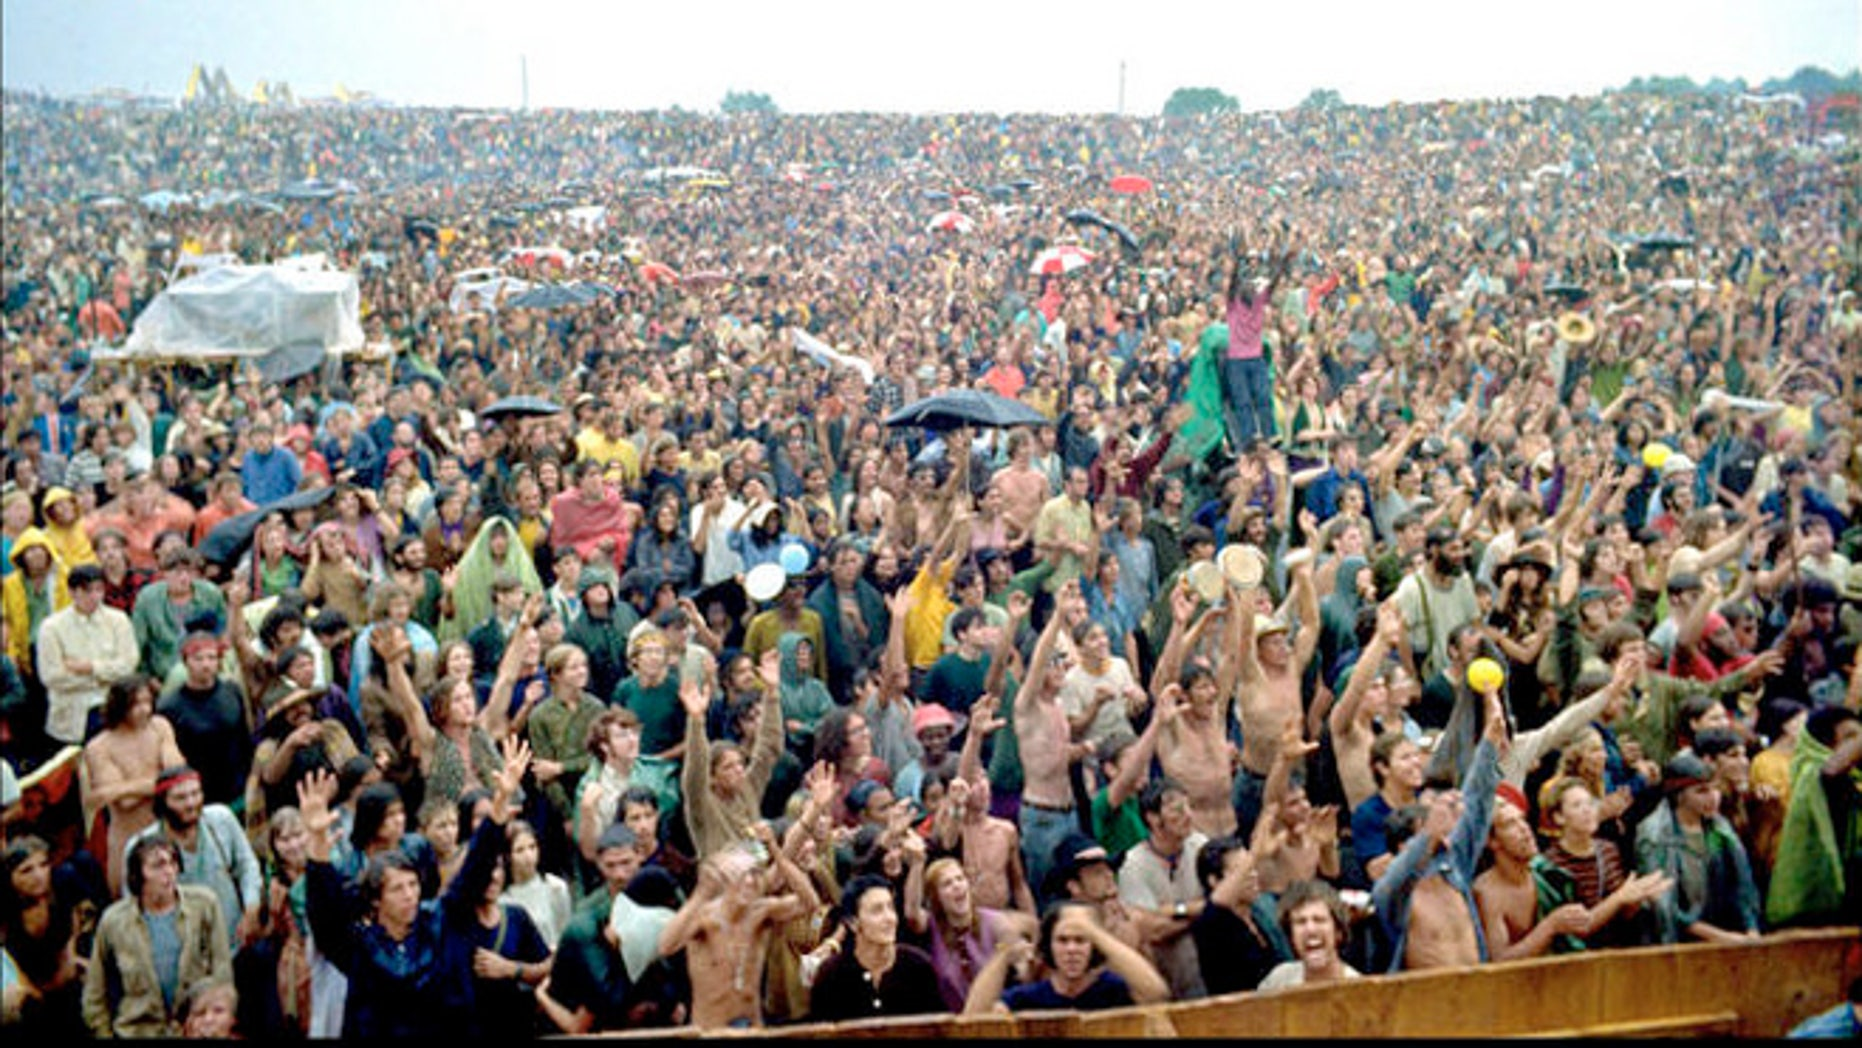 Elliott Landy's photograph of the crowd at the original Woodstock festival in August 1969. (AP/PRNewsFoto)